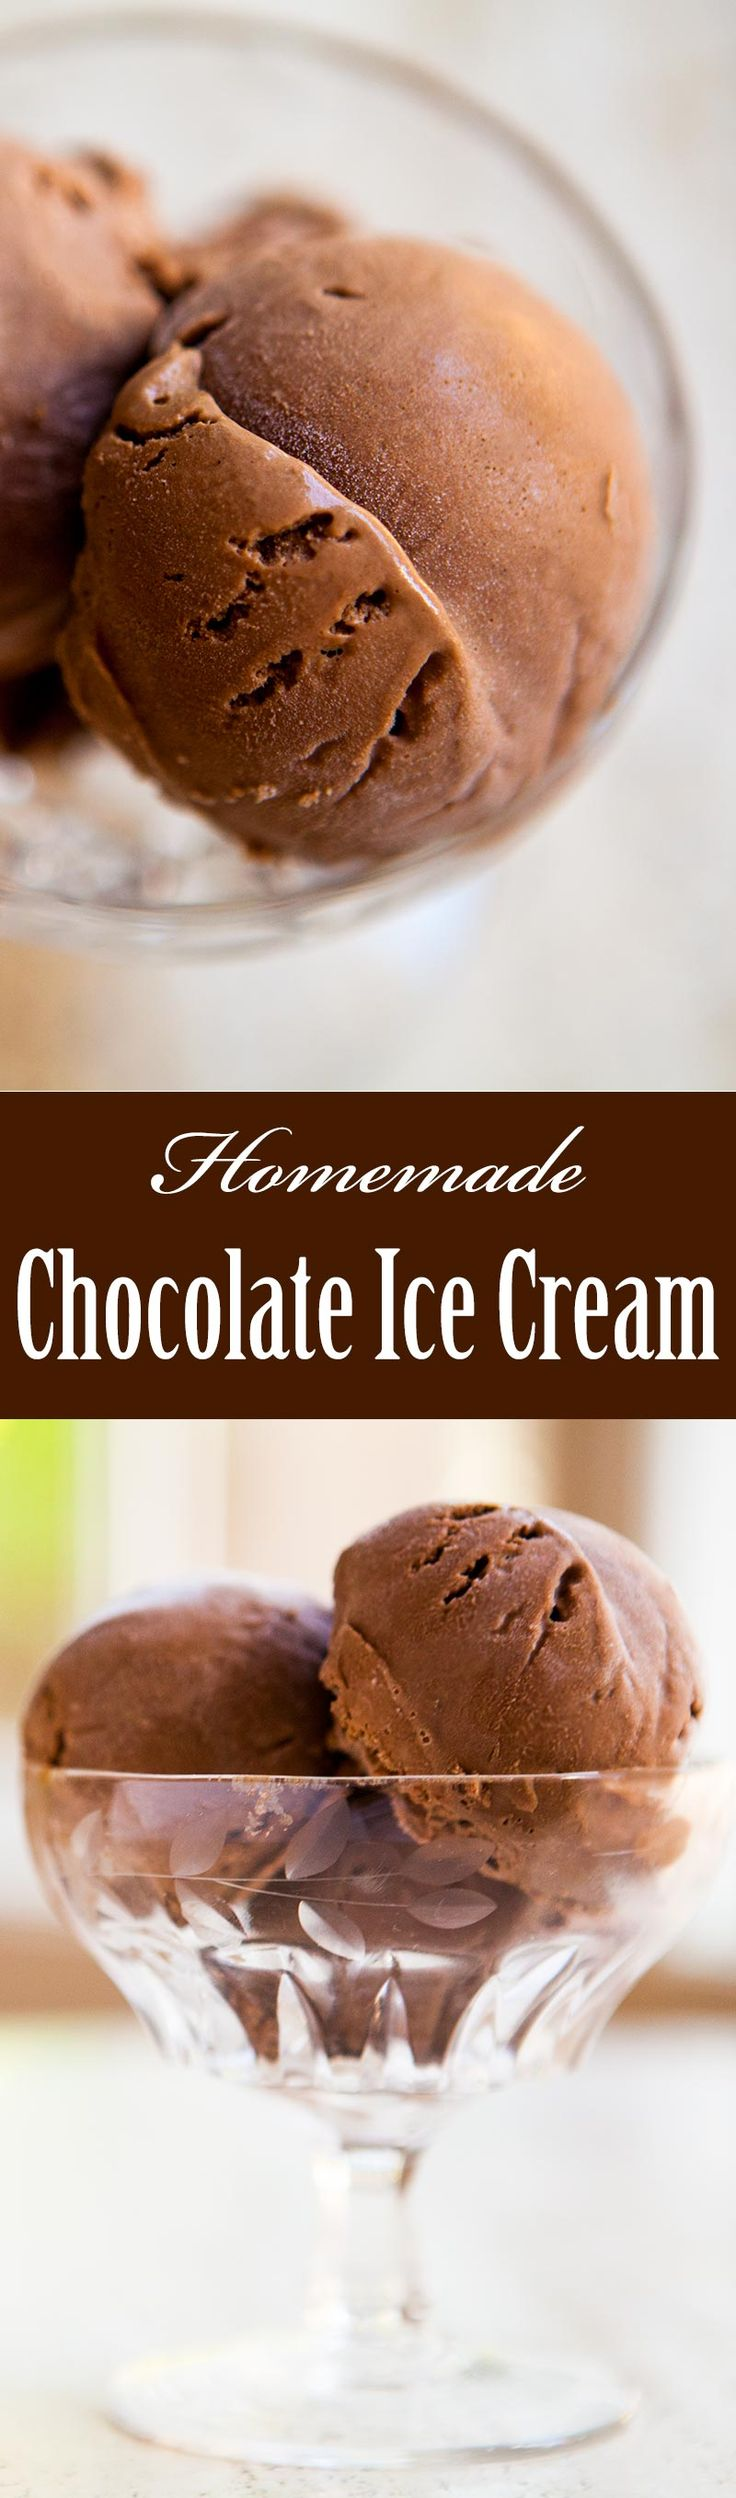 Learn how to make your own homemade rich and creamy chocolate ice cream! On SimplyRecipes.com